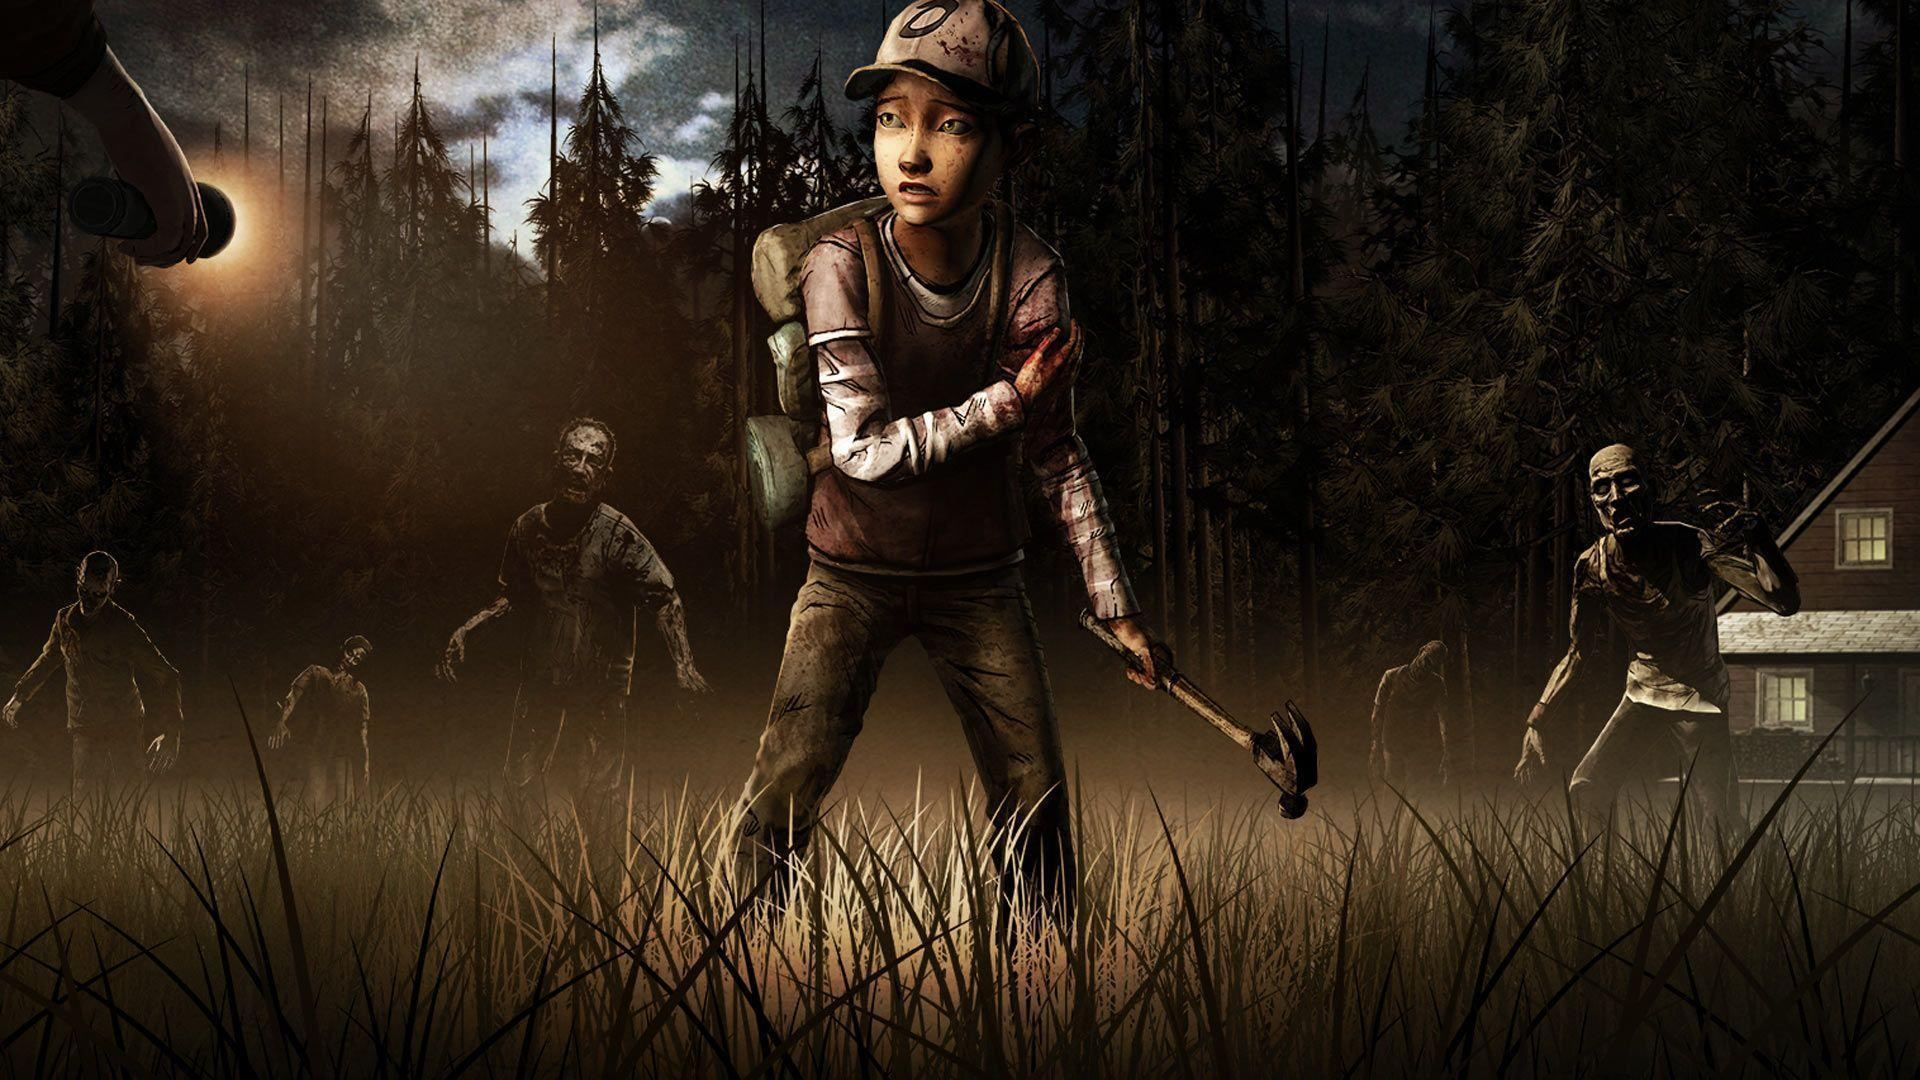 Video Game The Walking Dead: Season One Wallpaper 1920x1080 px ...